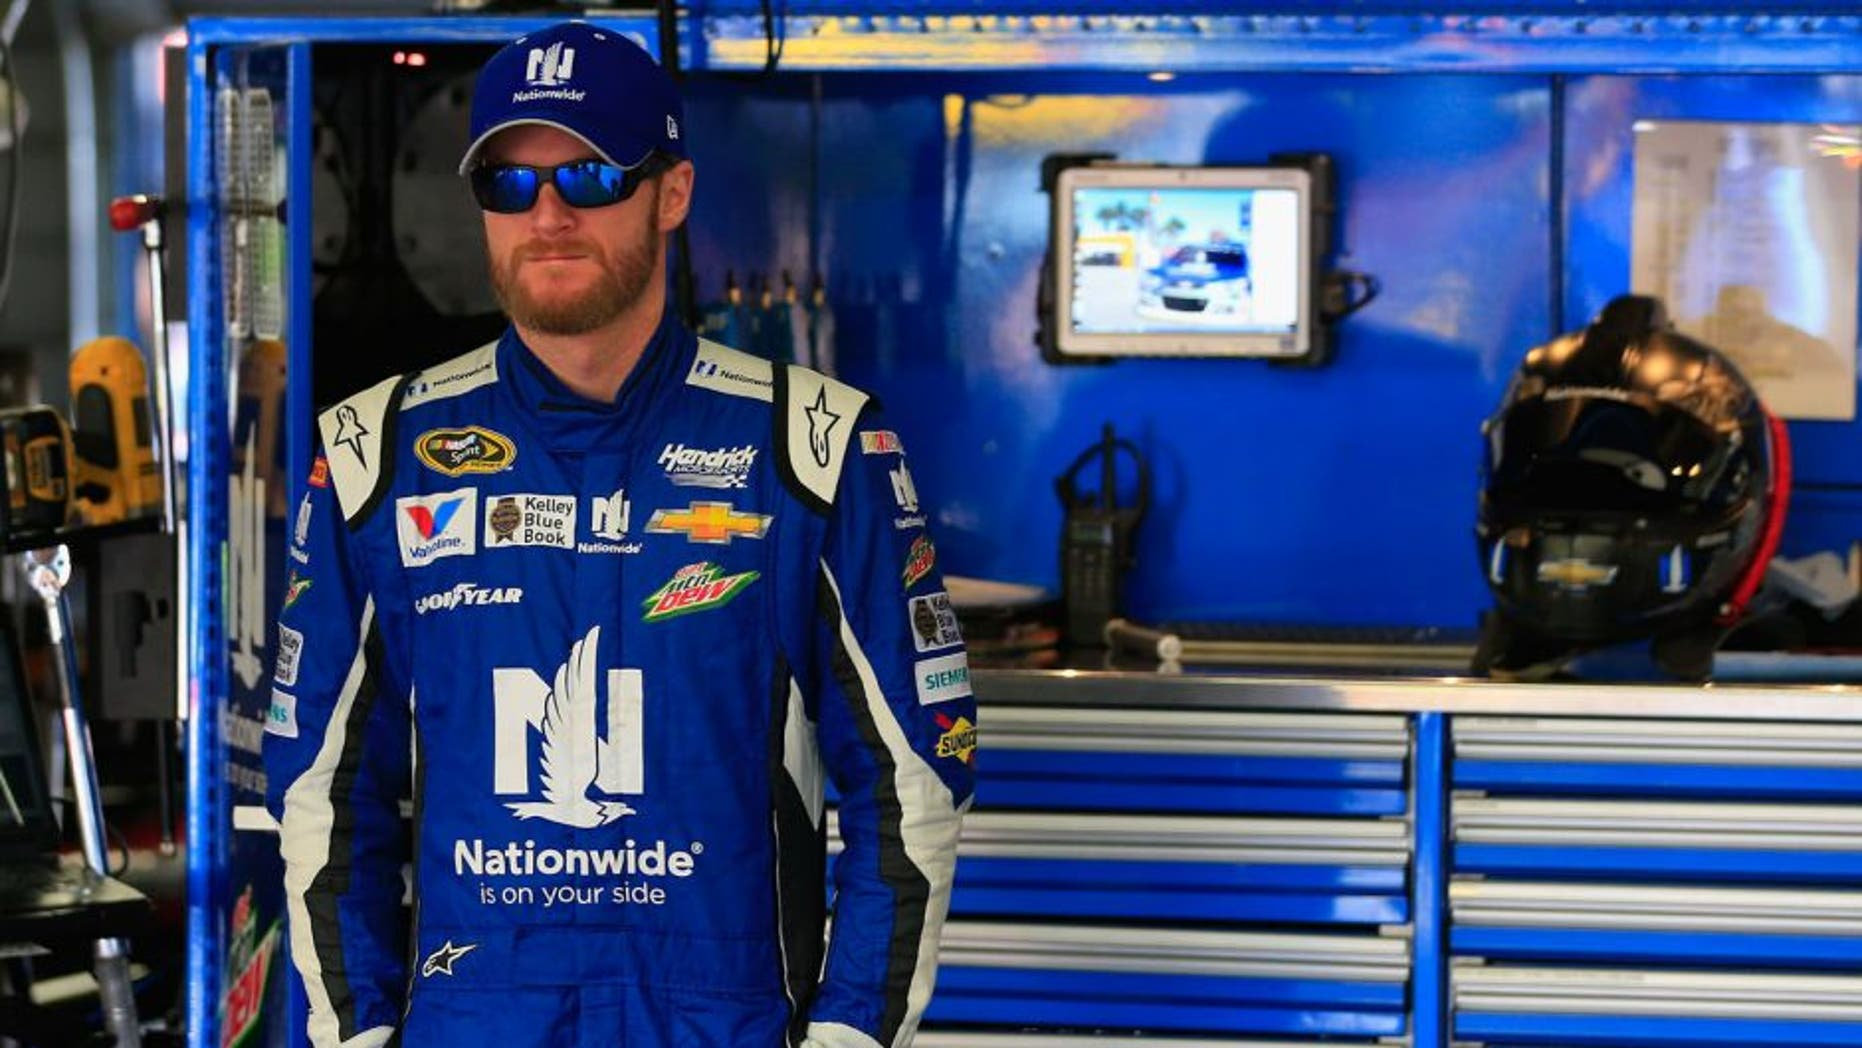 LOUDON, NH - SEPTEMBER 26: Dale Earnhardt Jr., driver of the #88 Nationwide Chevrolet, stands in the garage area during practice for the NASCAR Sprint Cup Series Sylvania 300 at New Hampshire Motor Speedway on September 26, 2015 in Loudon, New Hampshire. (Photo by Chris Trotman/Getty Images)